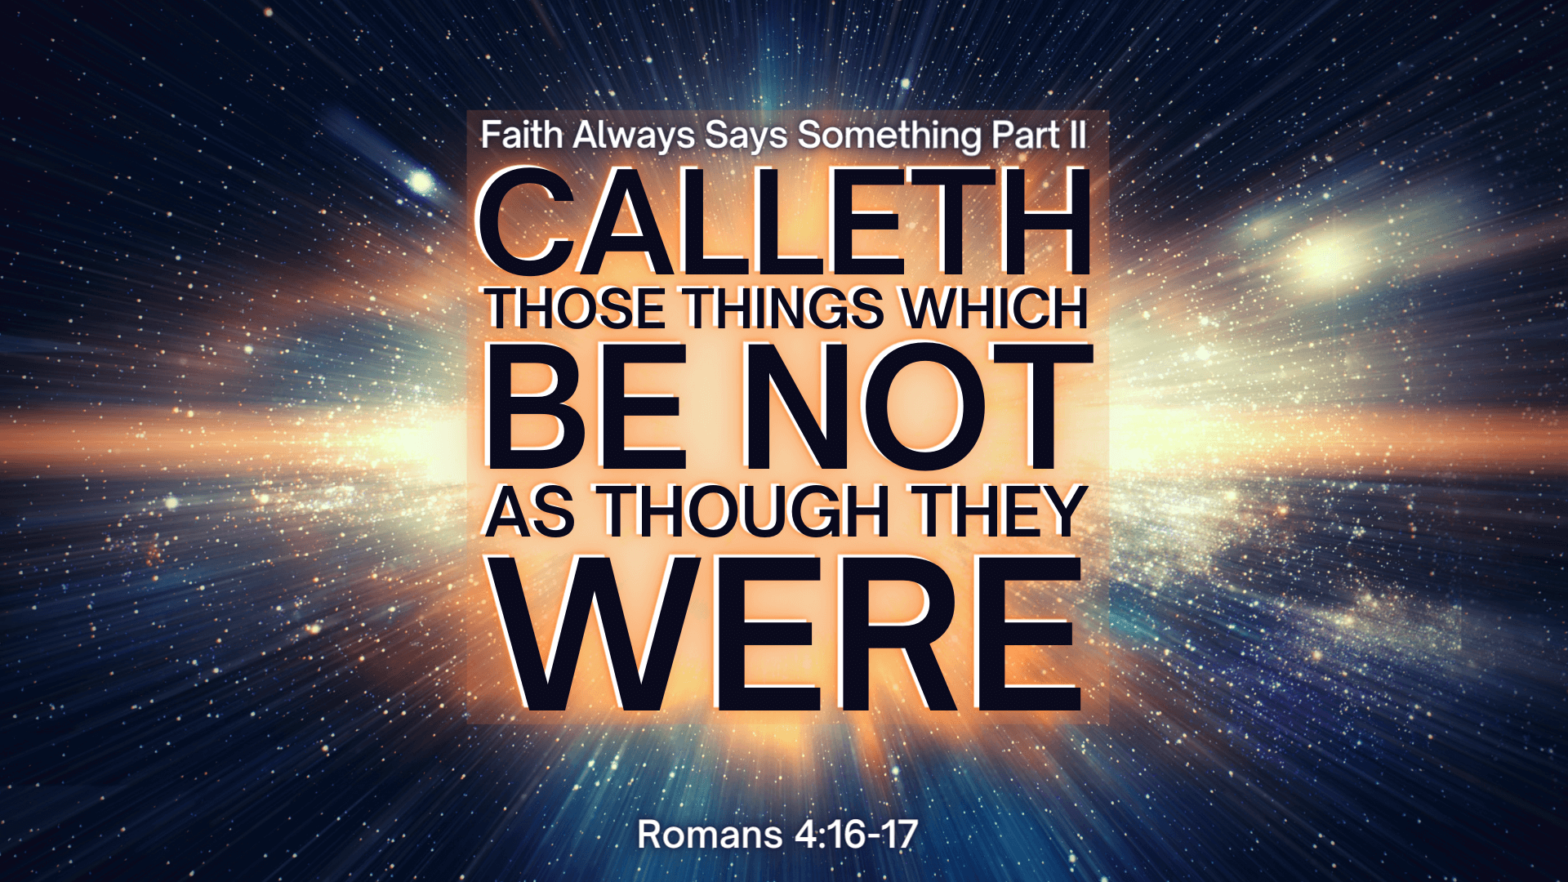 Calleth Those Things Which Be Not…